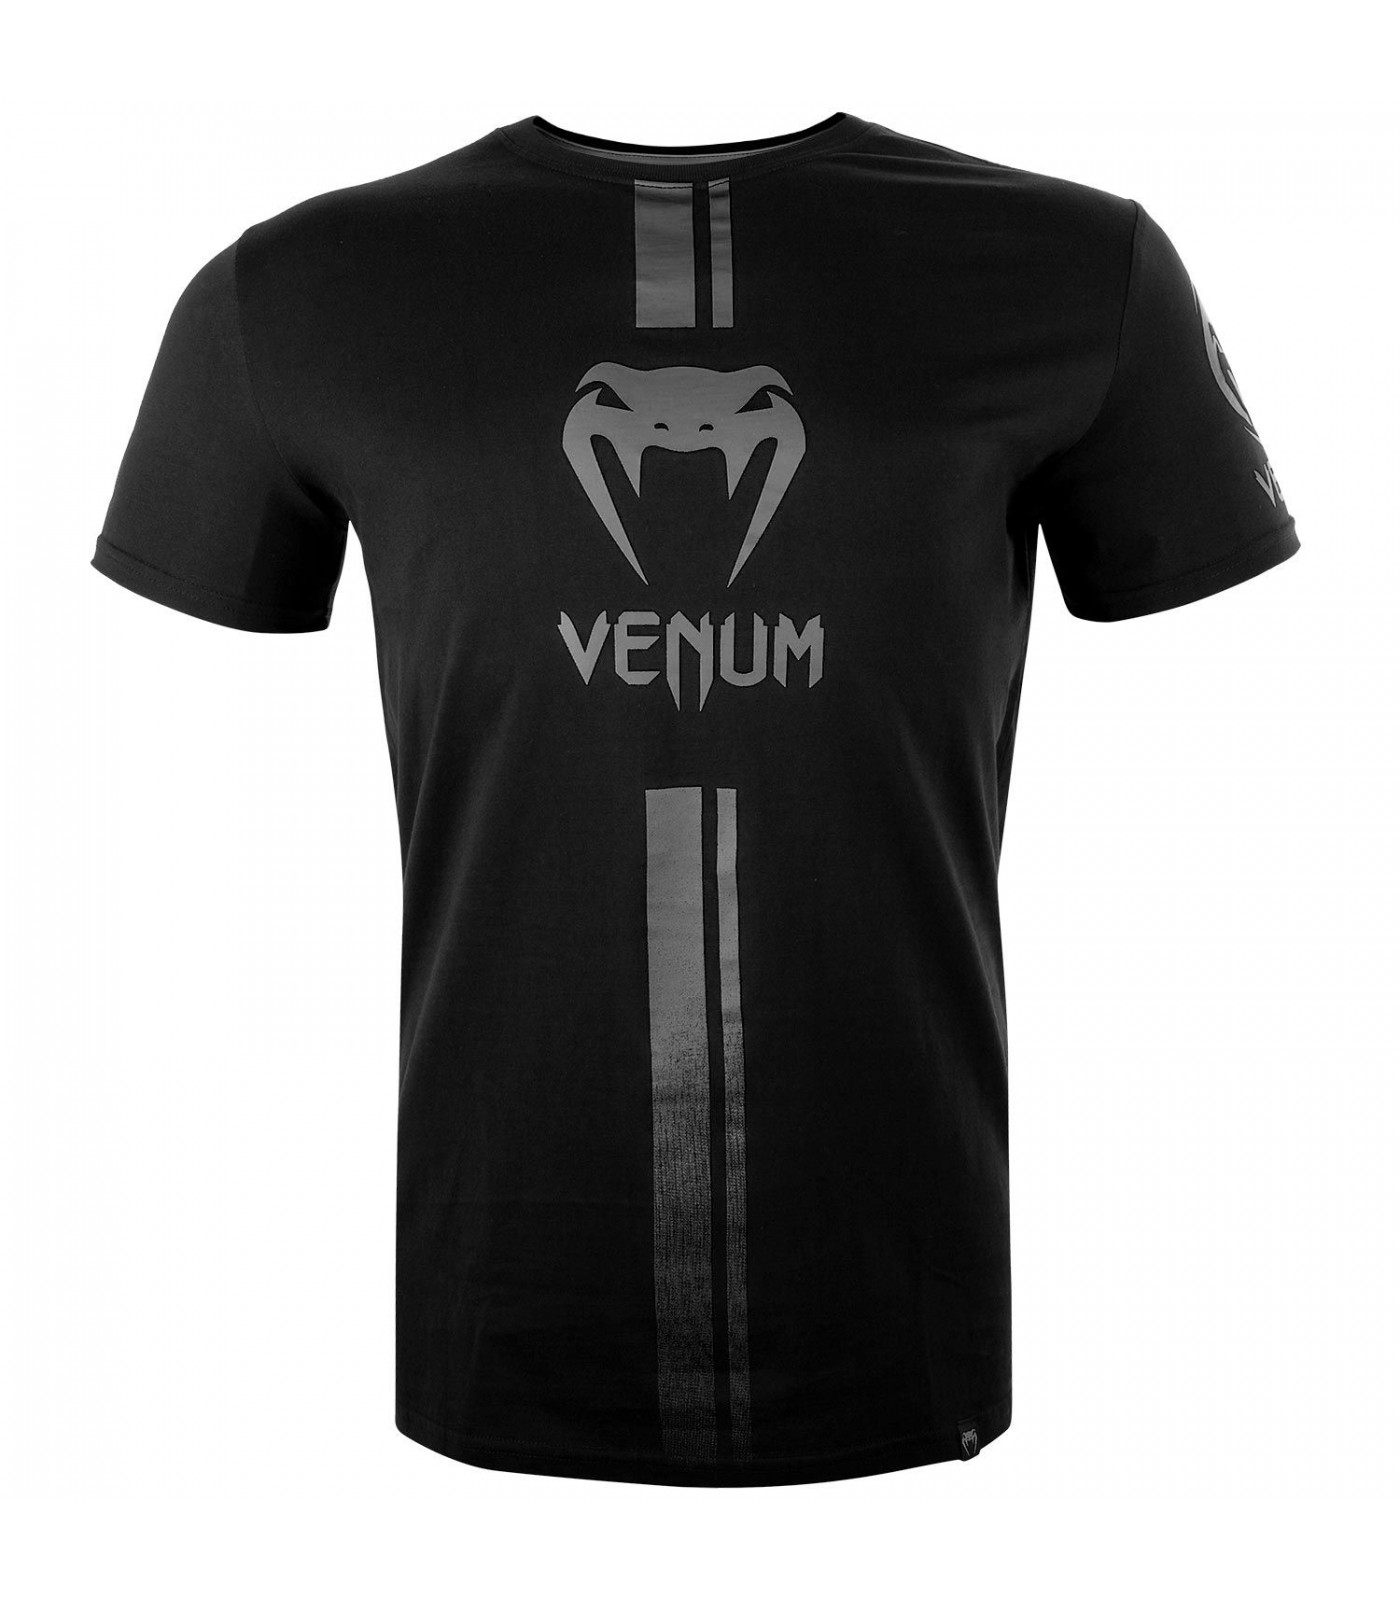 Тениска - Venum Logos T-Shirt - Black/Grey​